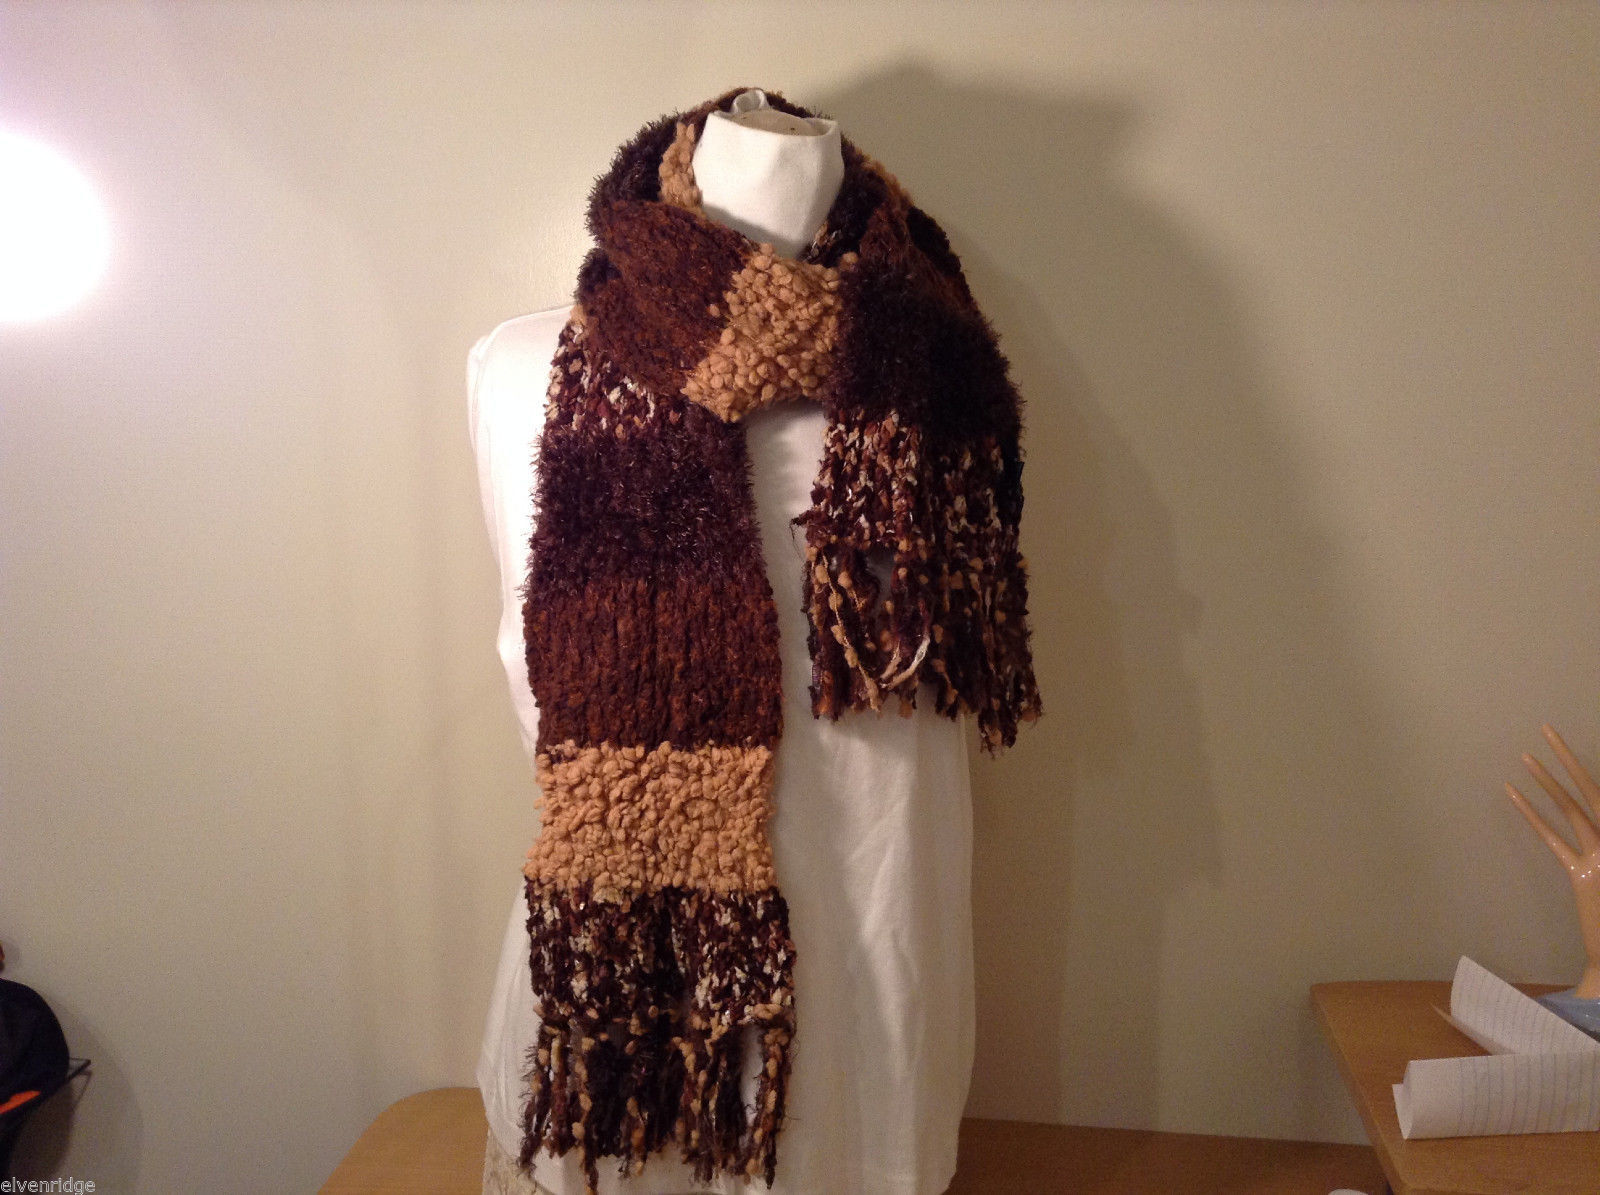 Cejon brown tan white fleece feel knitted scarf with fringes